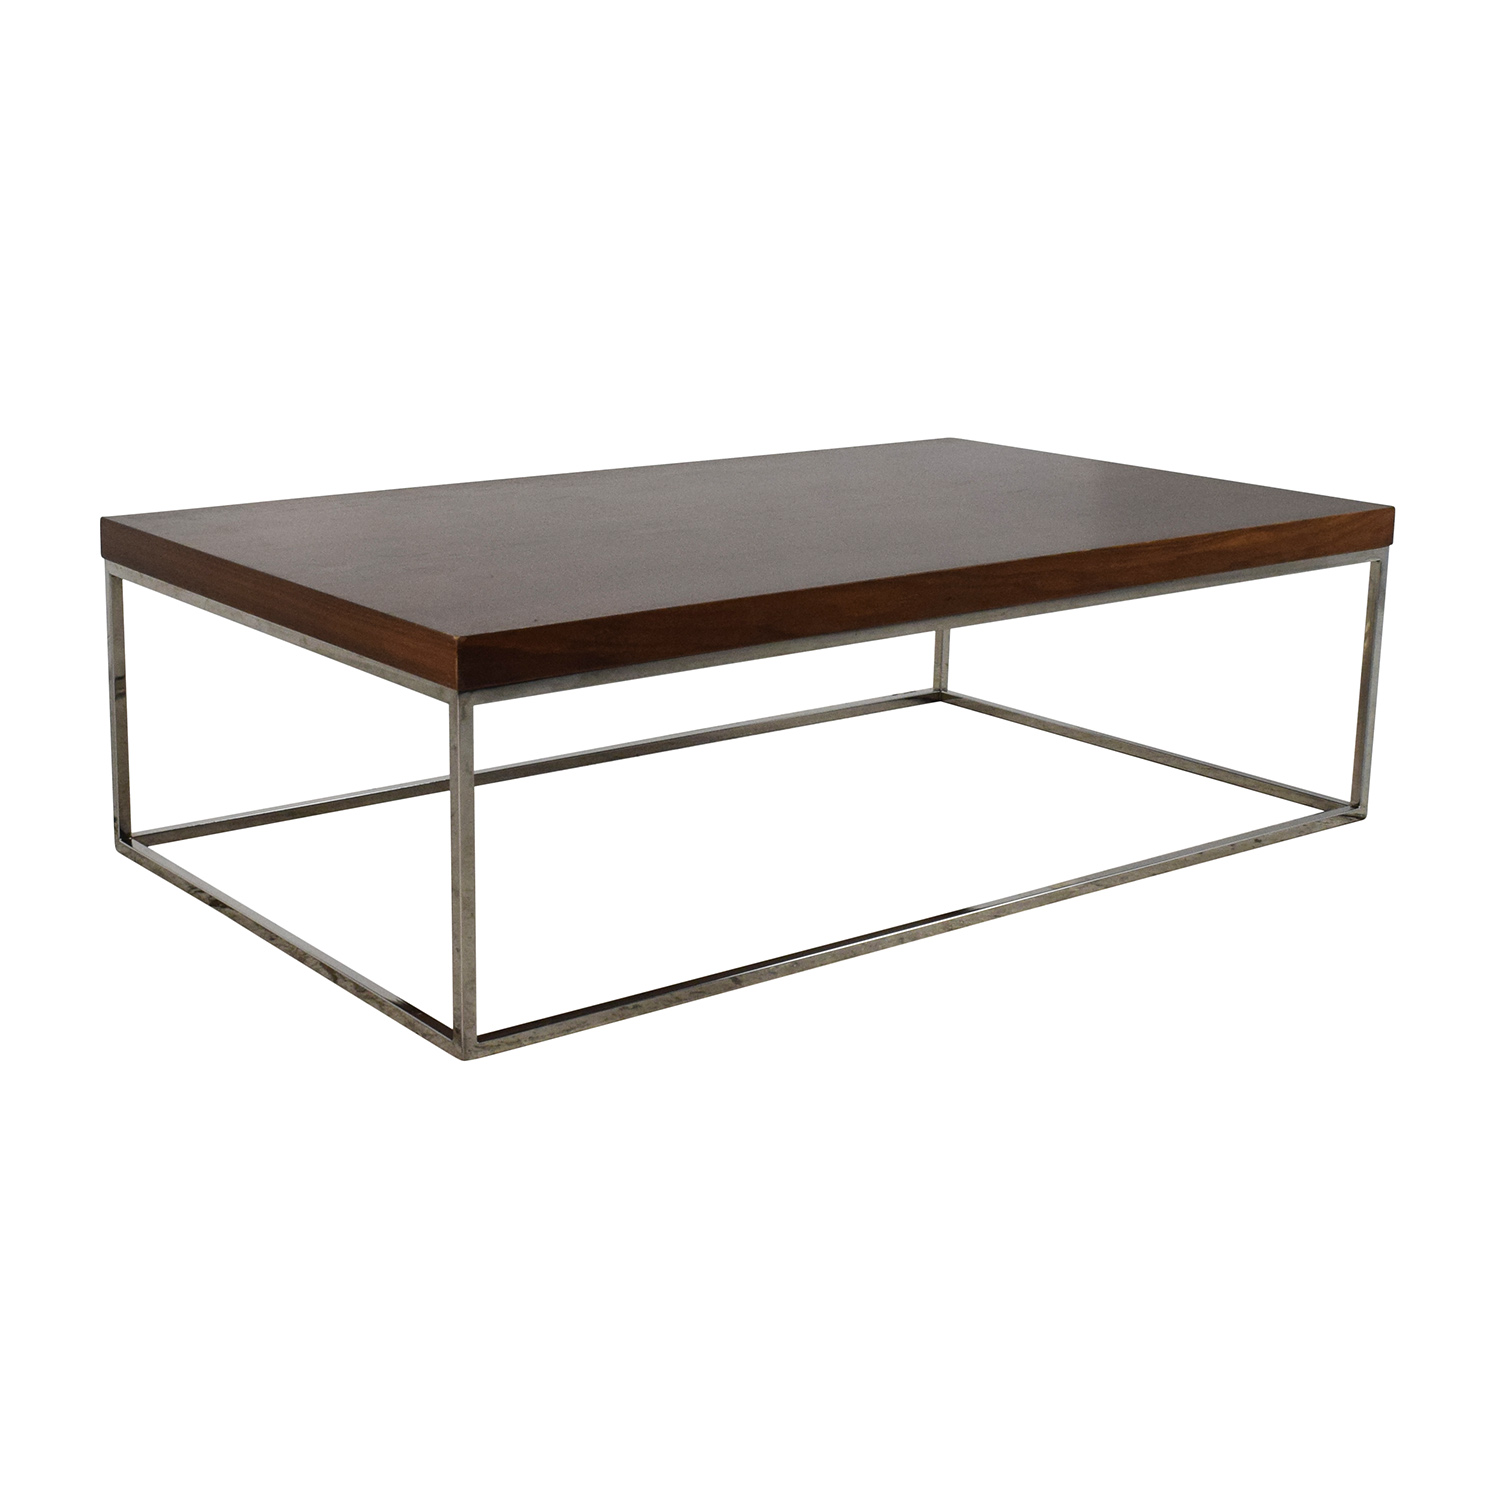 80% OFF West Elm West Elm Copenhagen Coffee Table Tables